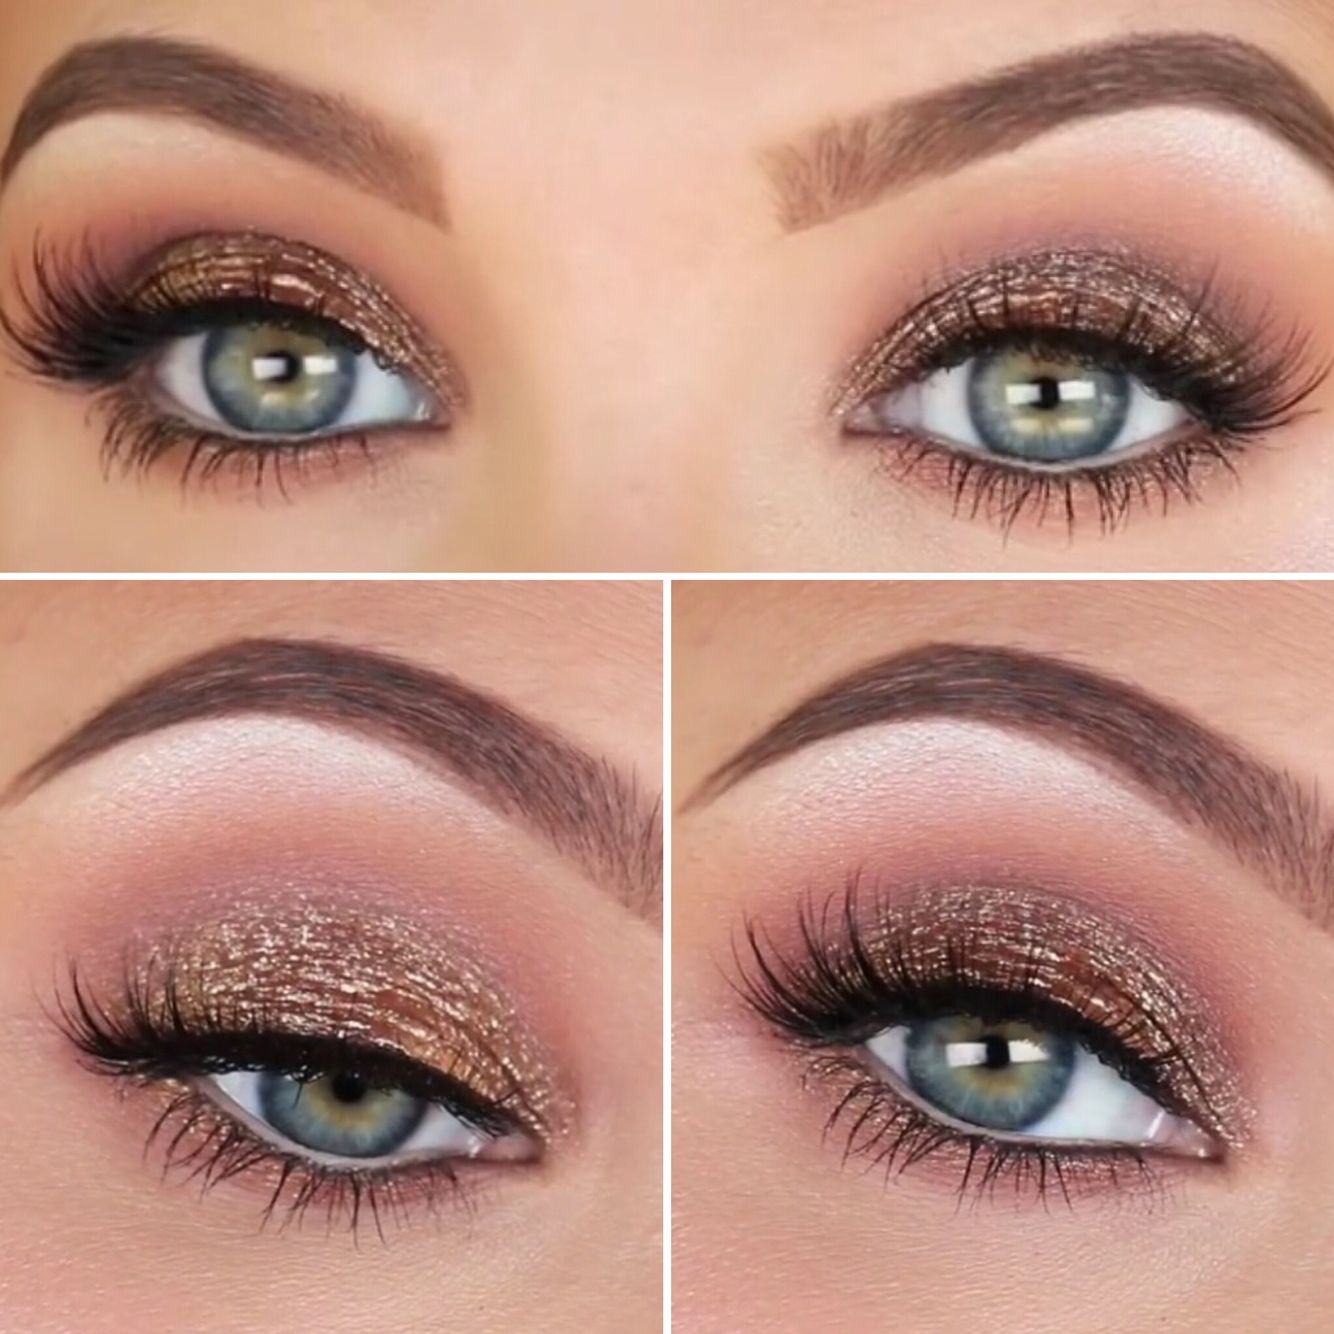 how to use eye drops with eyeshadow